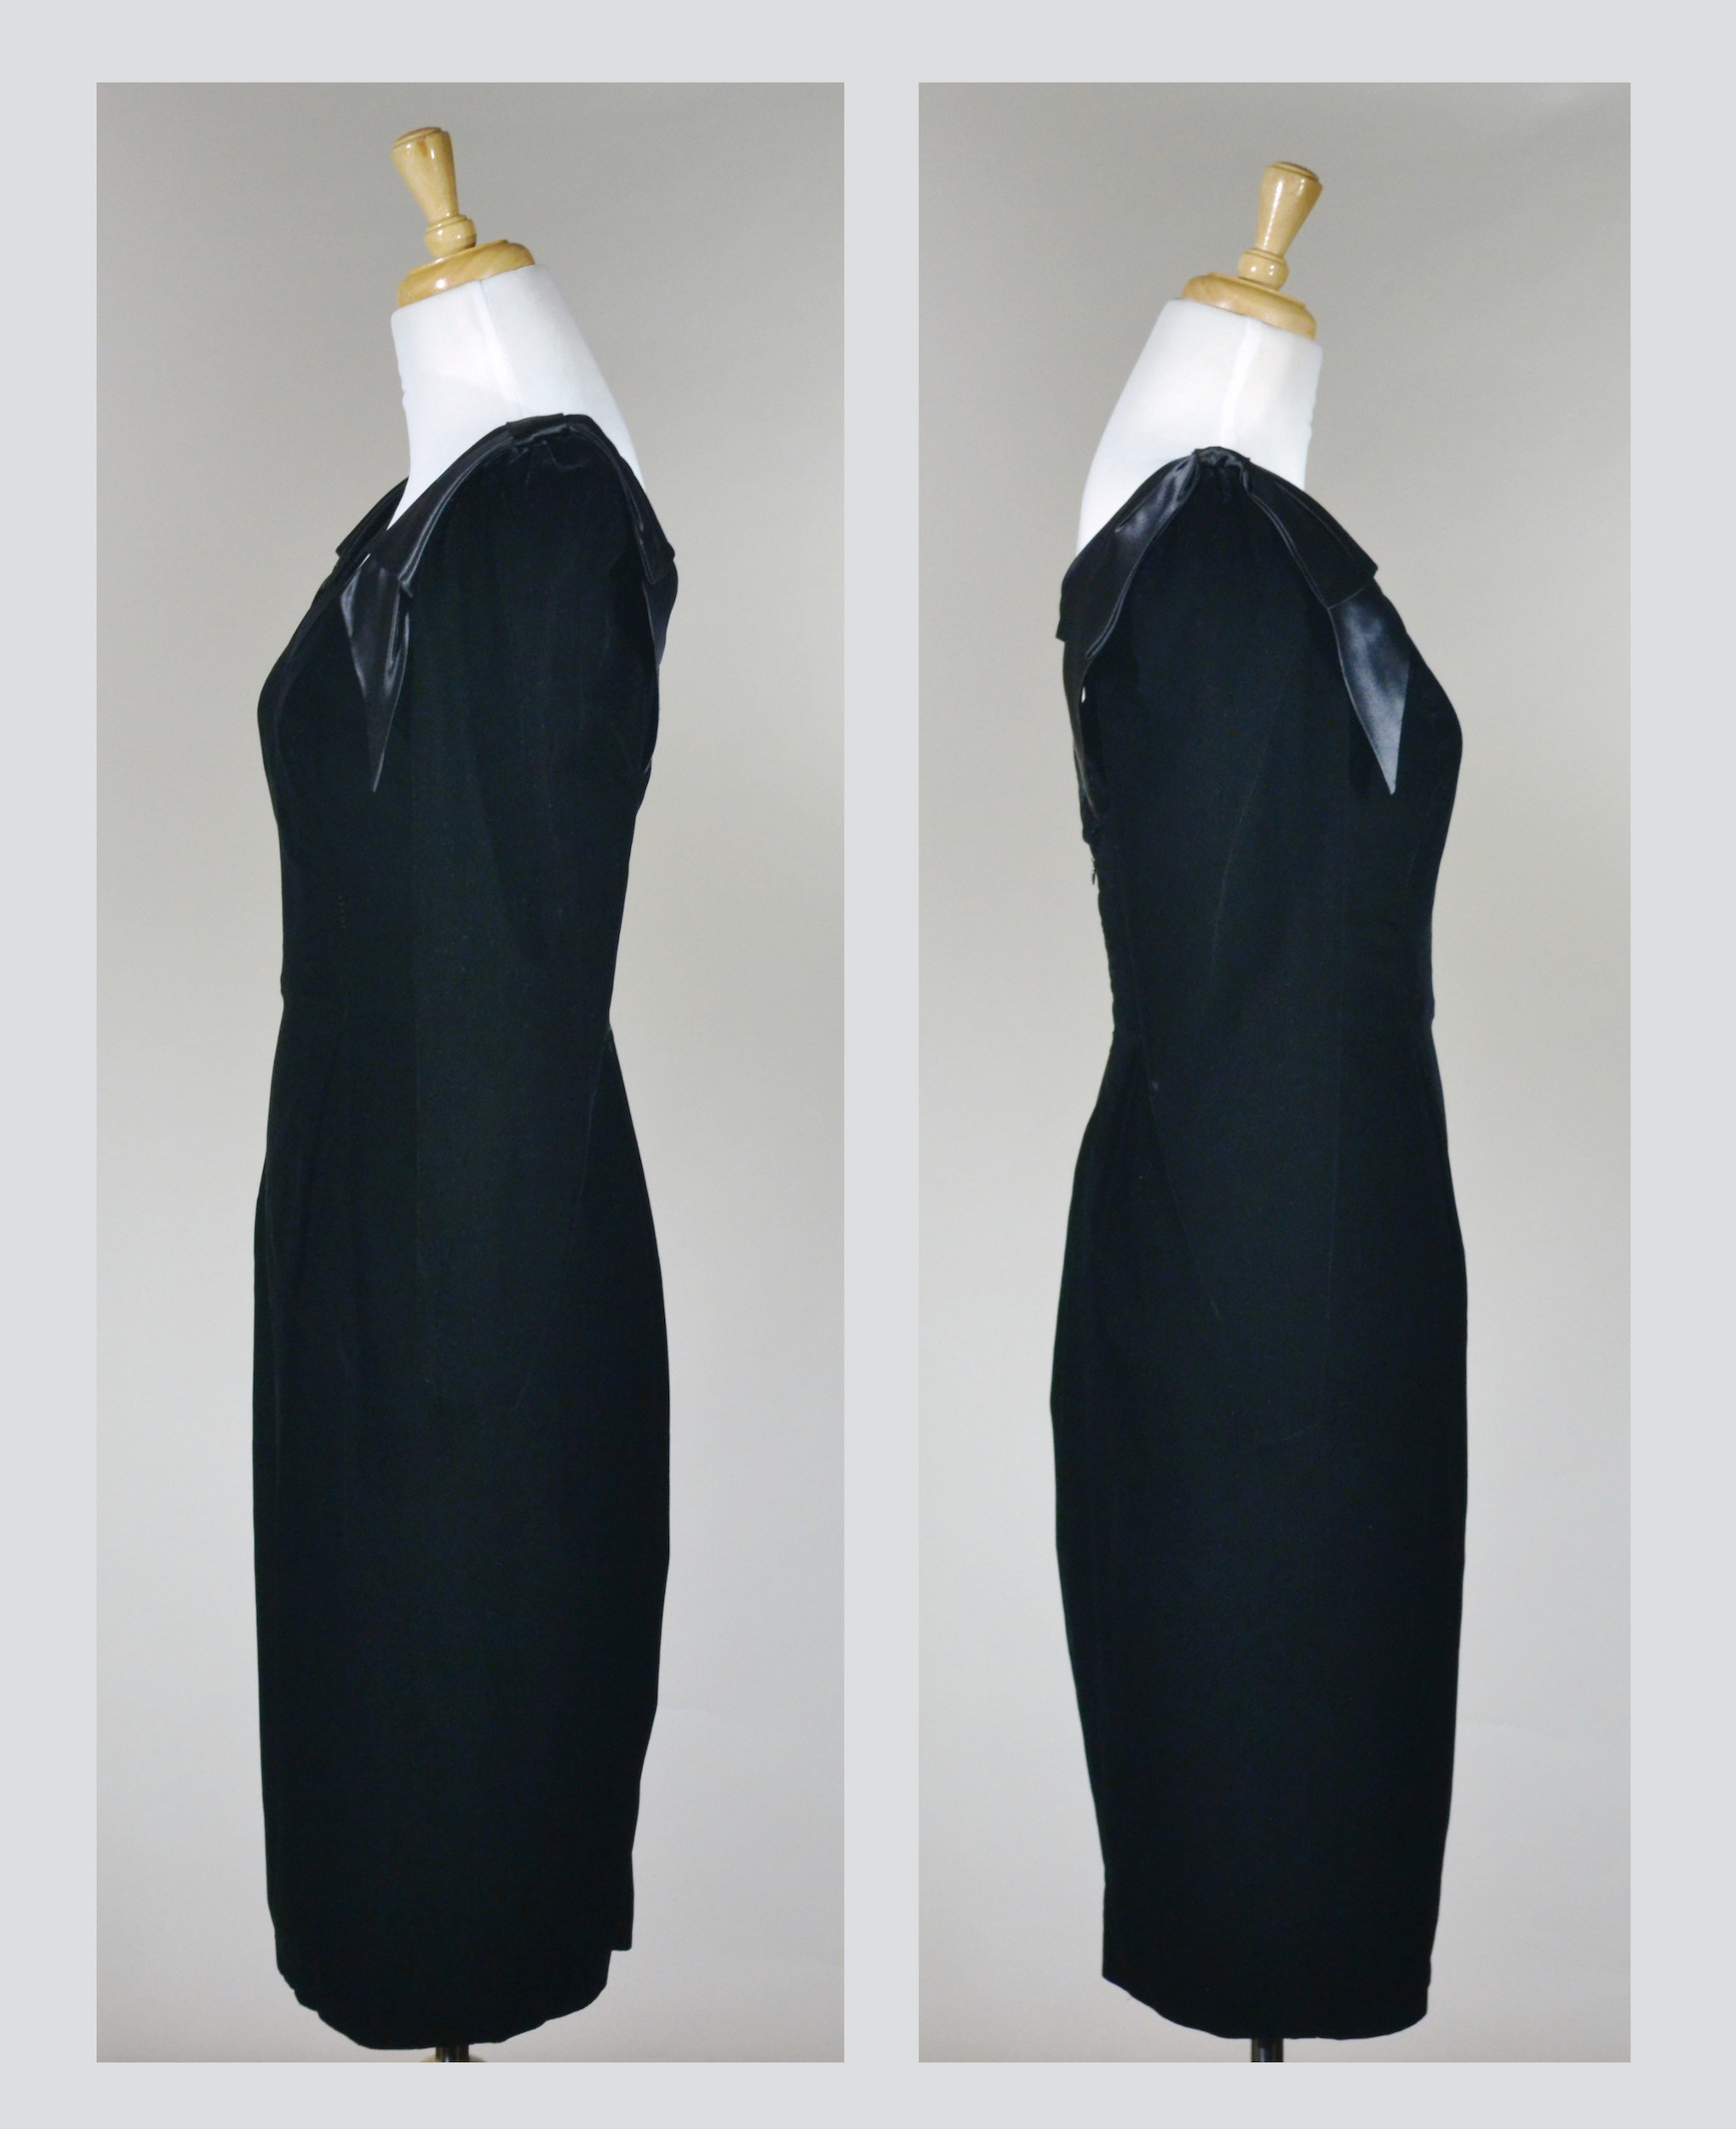 1980s Party Dress with Leaf Sleeve Detail